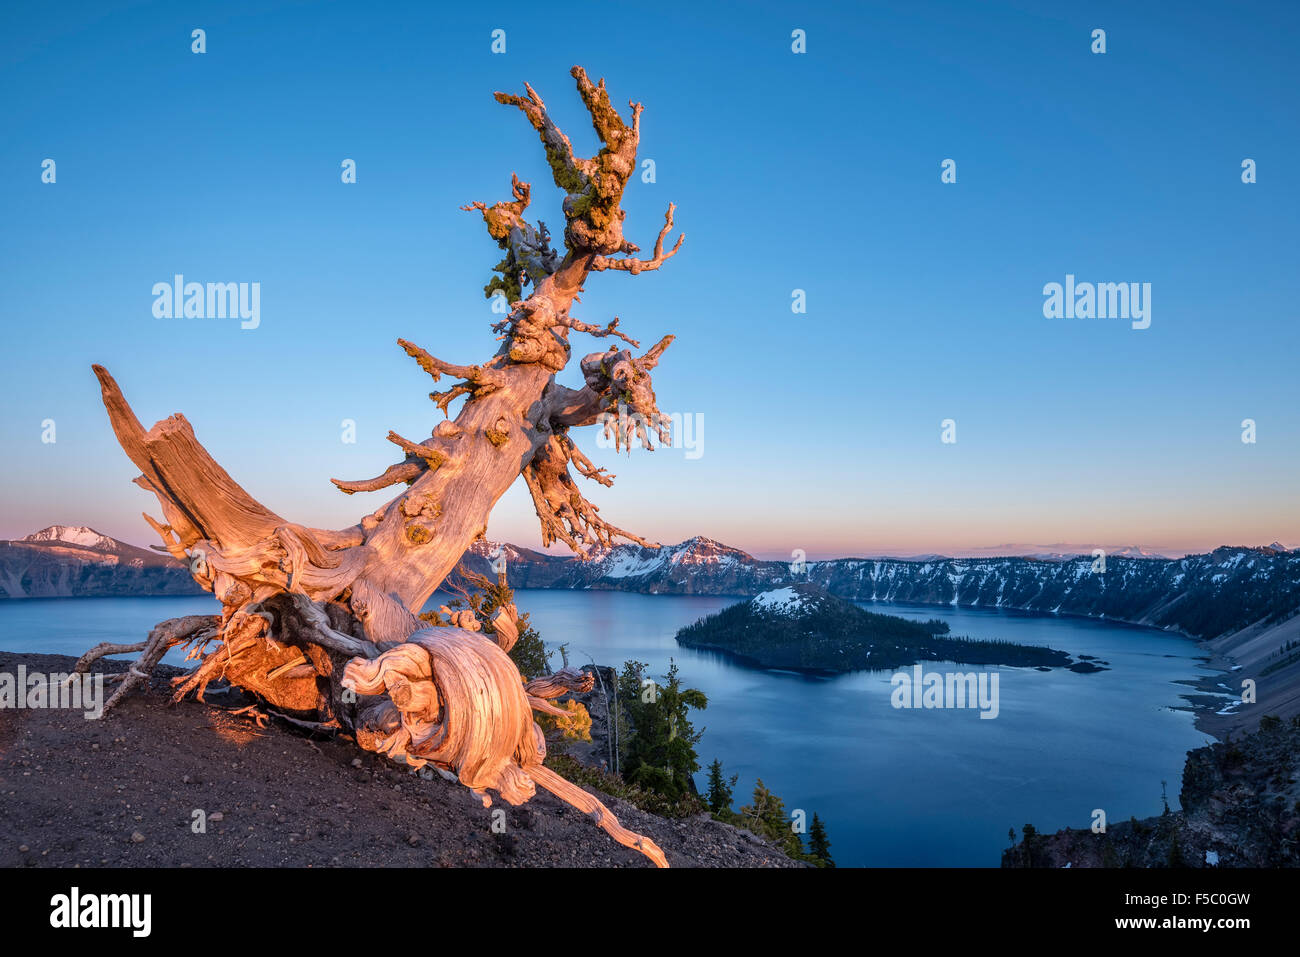 Whitebark pine snag overlooking Wizard Island at Crater Lake National Park, Oregon. - Stock Image